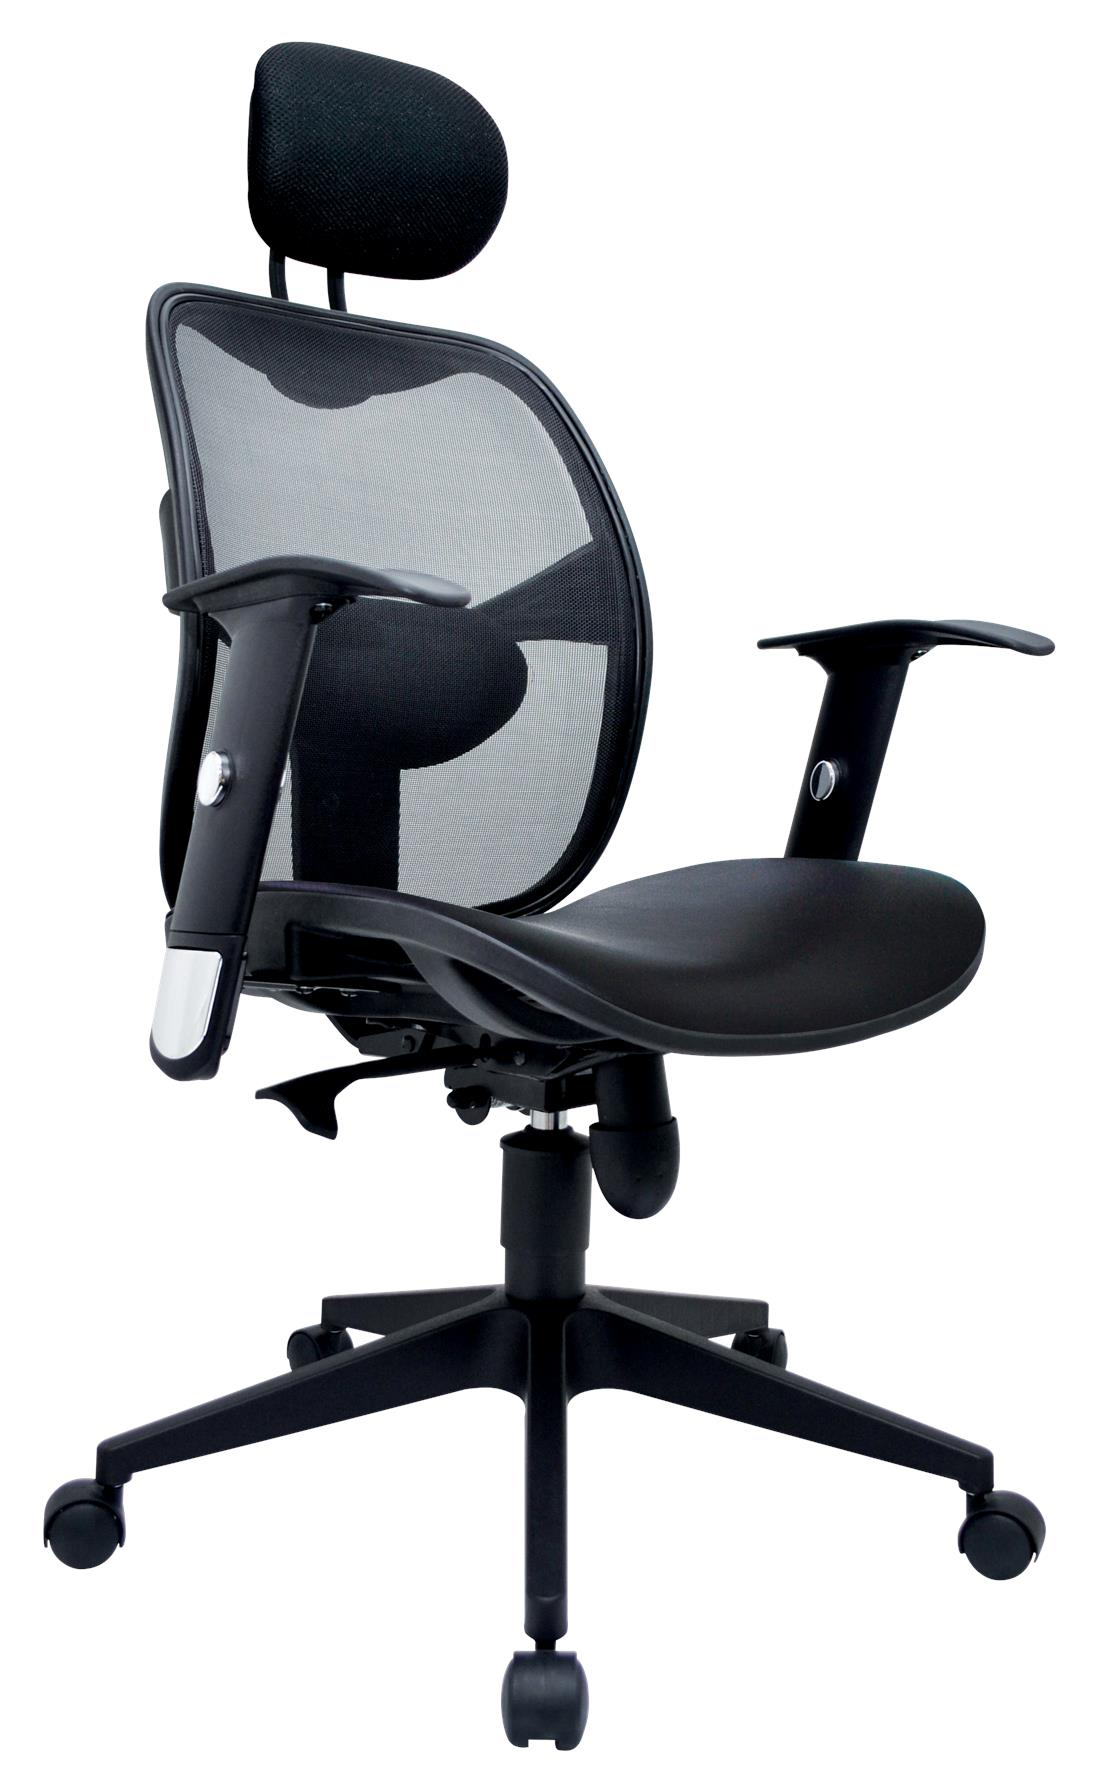 OFFICE MESH CHAIR | OFFICE NETTING CHAIR MODEL : NT-08(HB)